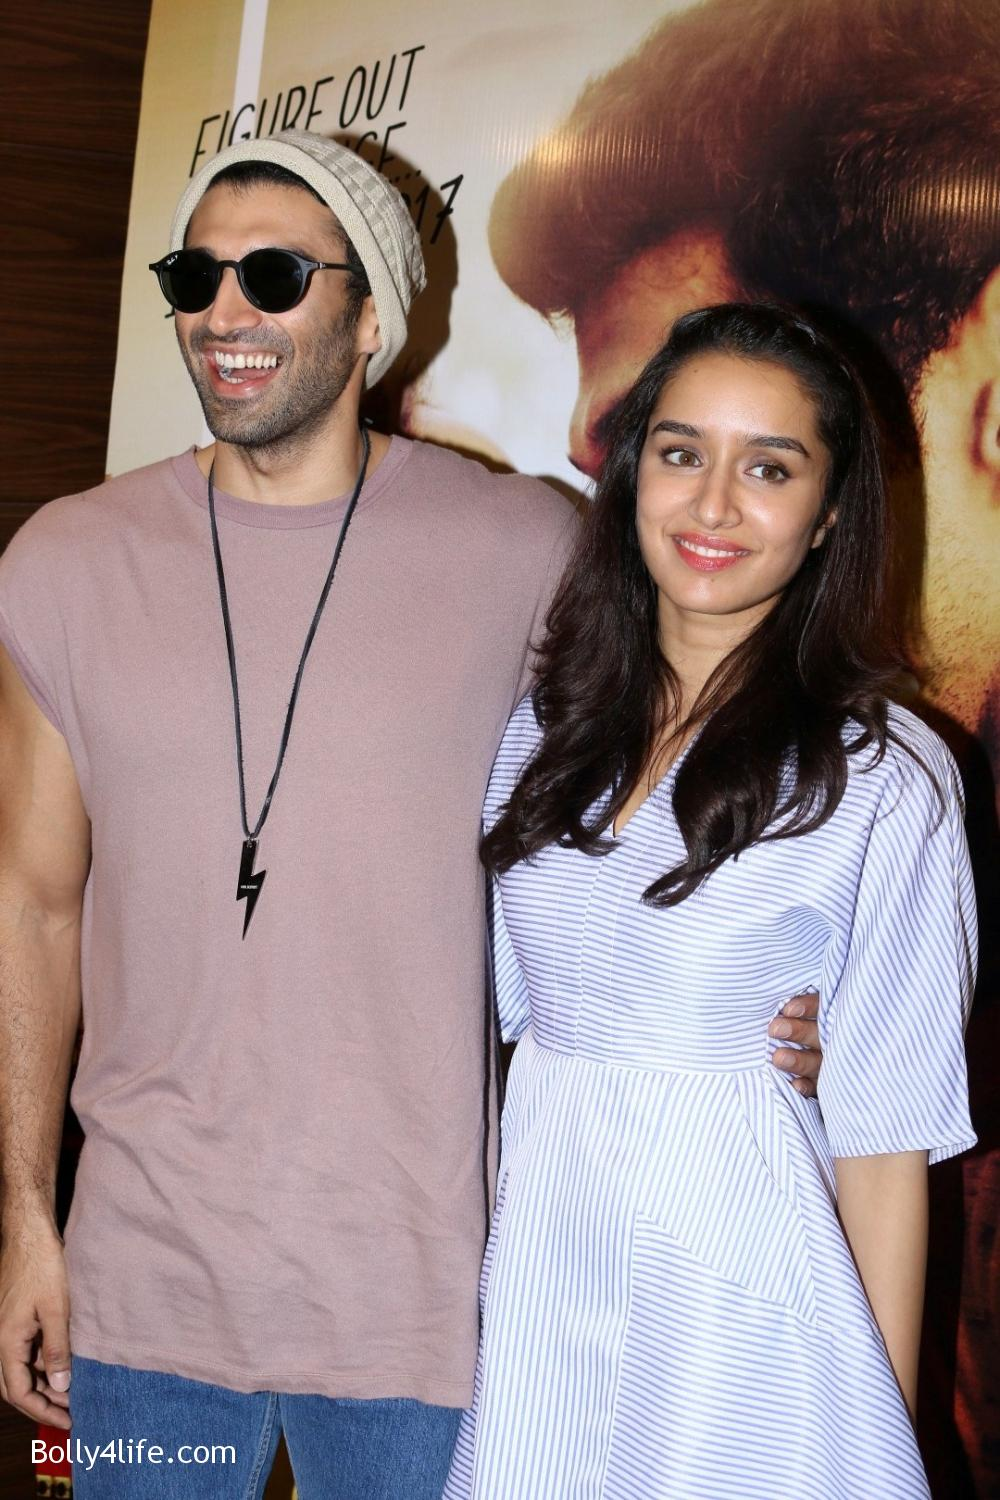 Aditya-Roy-Kapur-and-Shraddha-Kapoor-during-the-media-interaction-for-the-film-Ok-Jaanu-8.jpg